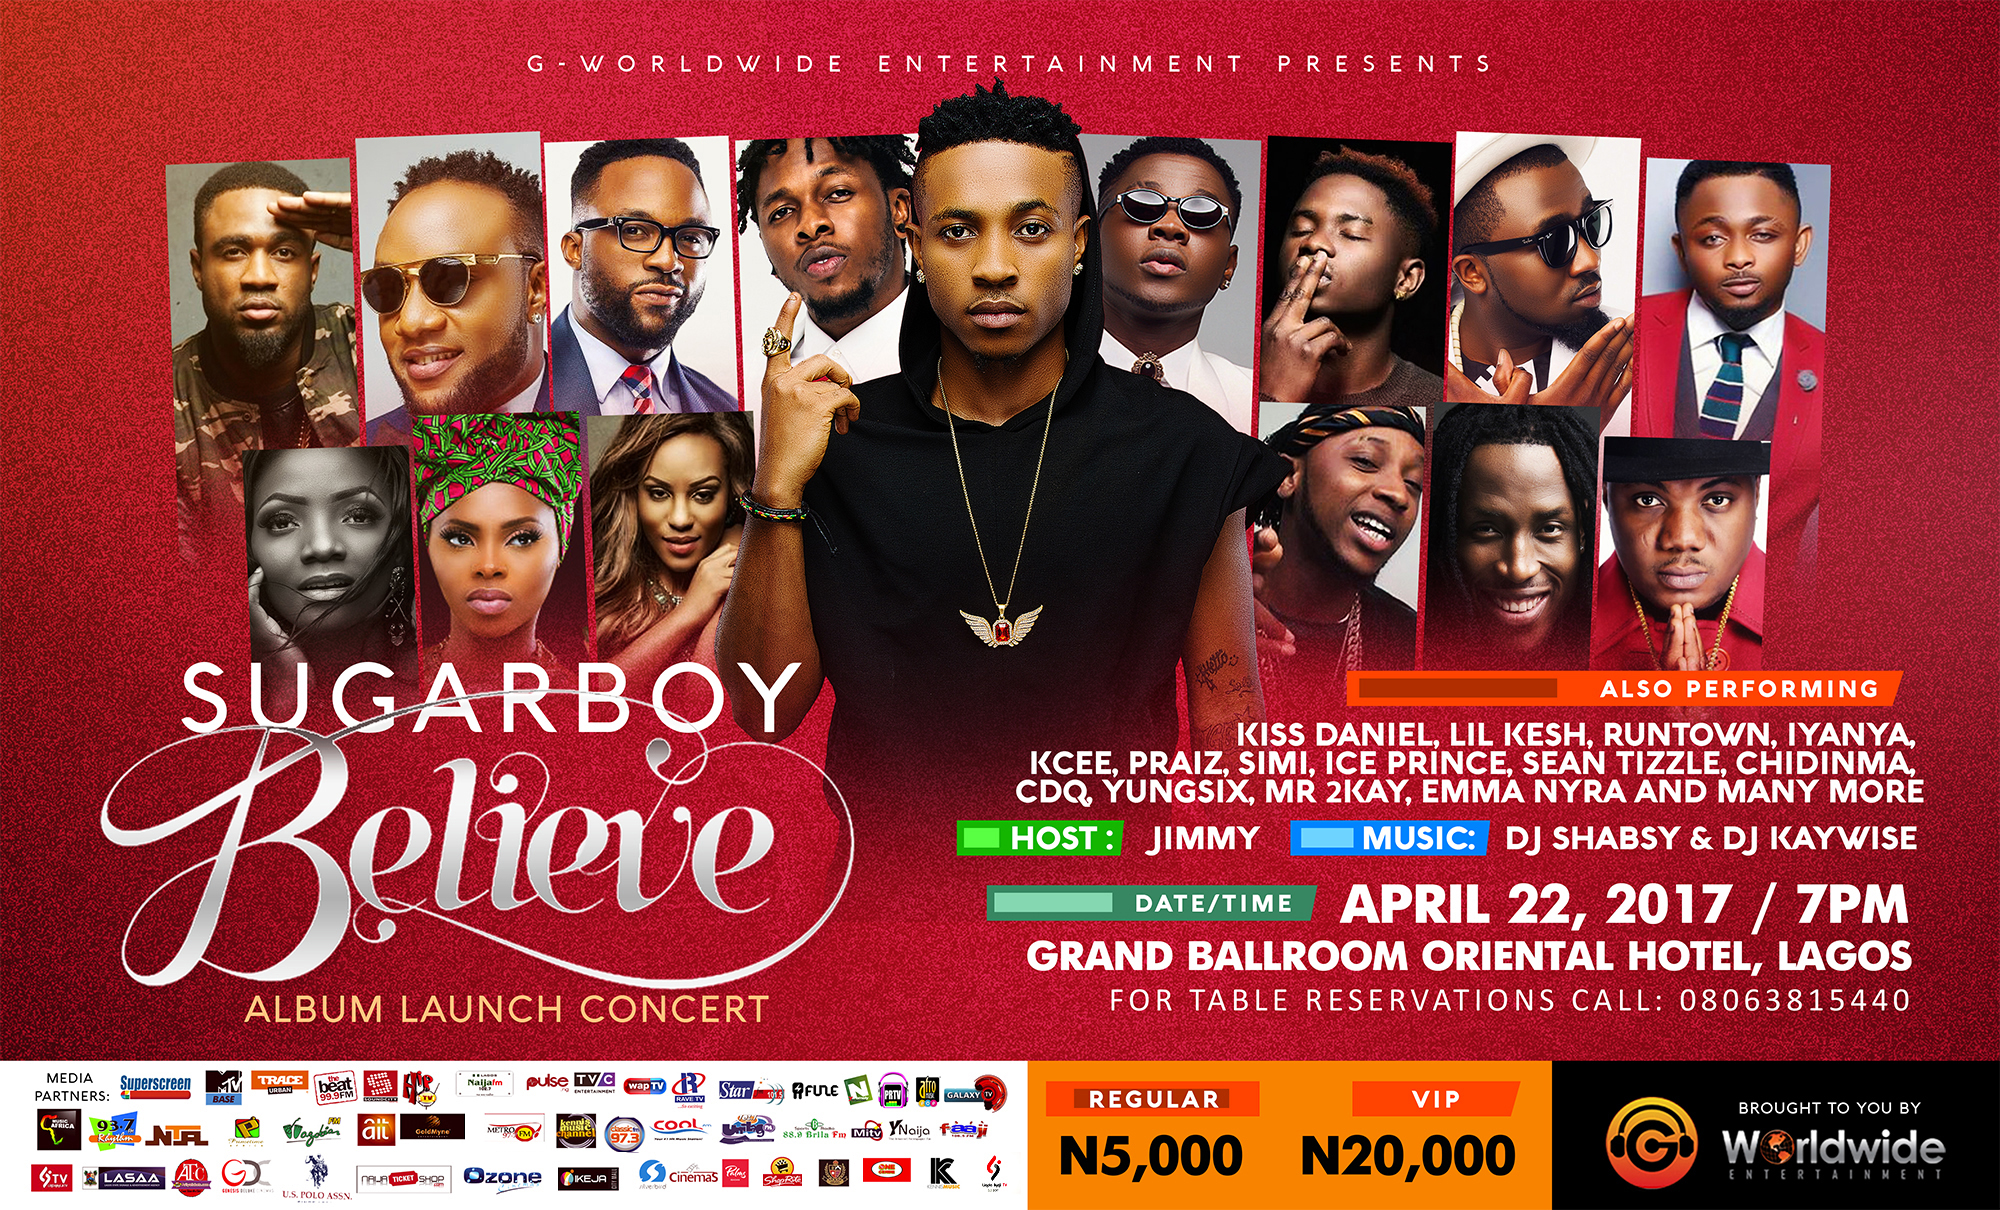 G-Worldwide Announces Sugarboy Believe Album Launch Concert & Performing Artists